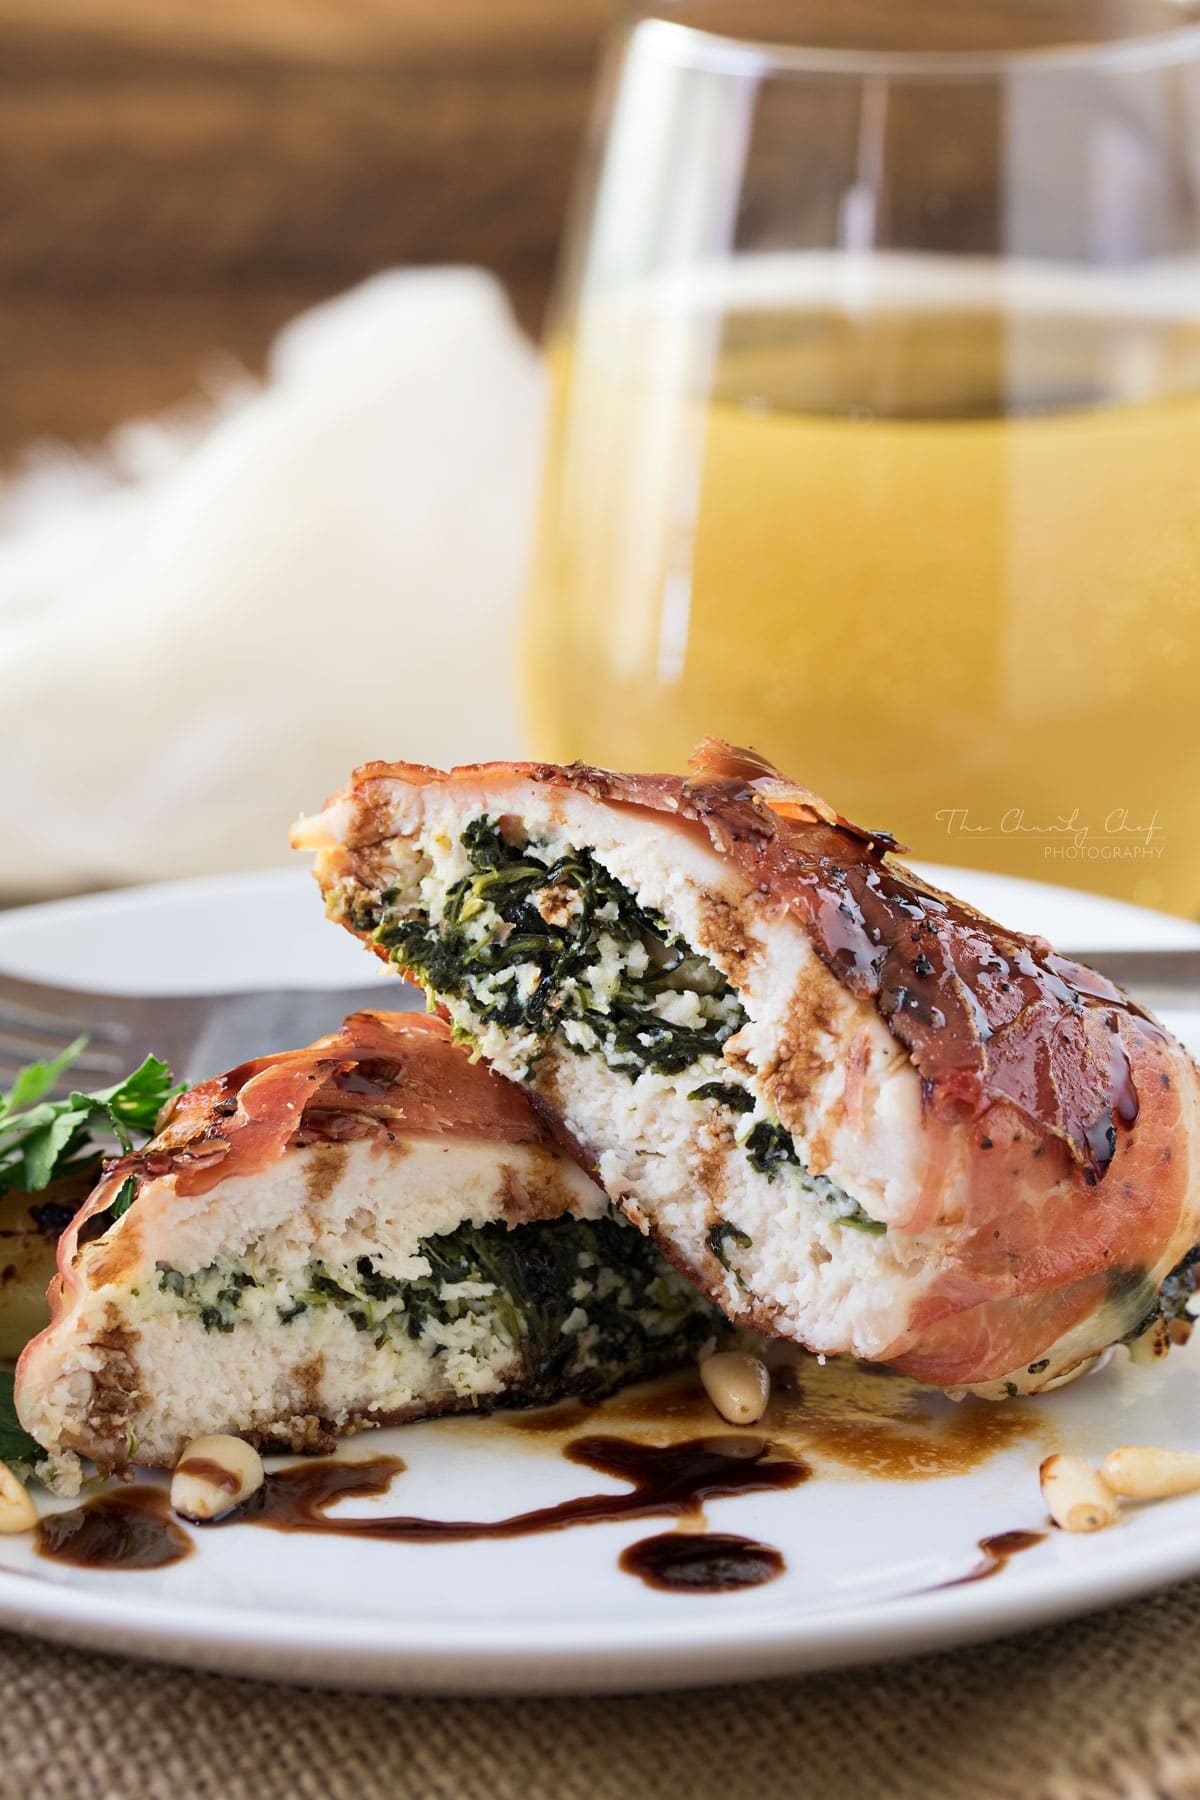 Florentine Stuffed Chicken | This Florentine stuffed chicken is filled with a deliciously cheesy spinach mixture, and toasted pine nuts, then wrapped in prosciutto and baked! | http://thechunkychef.com